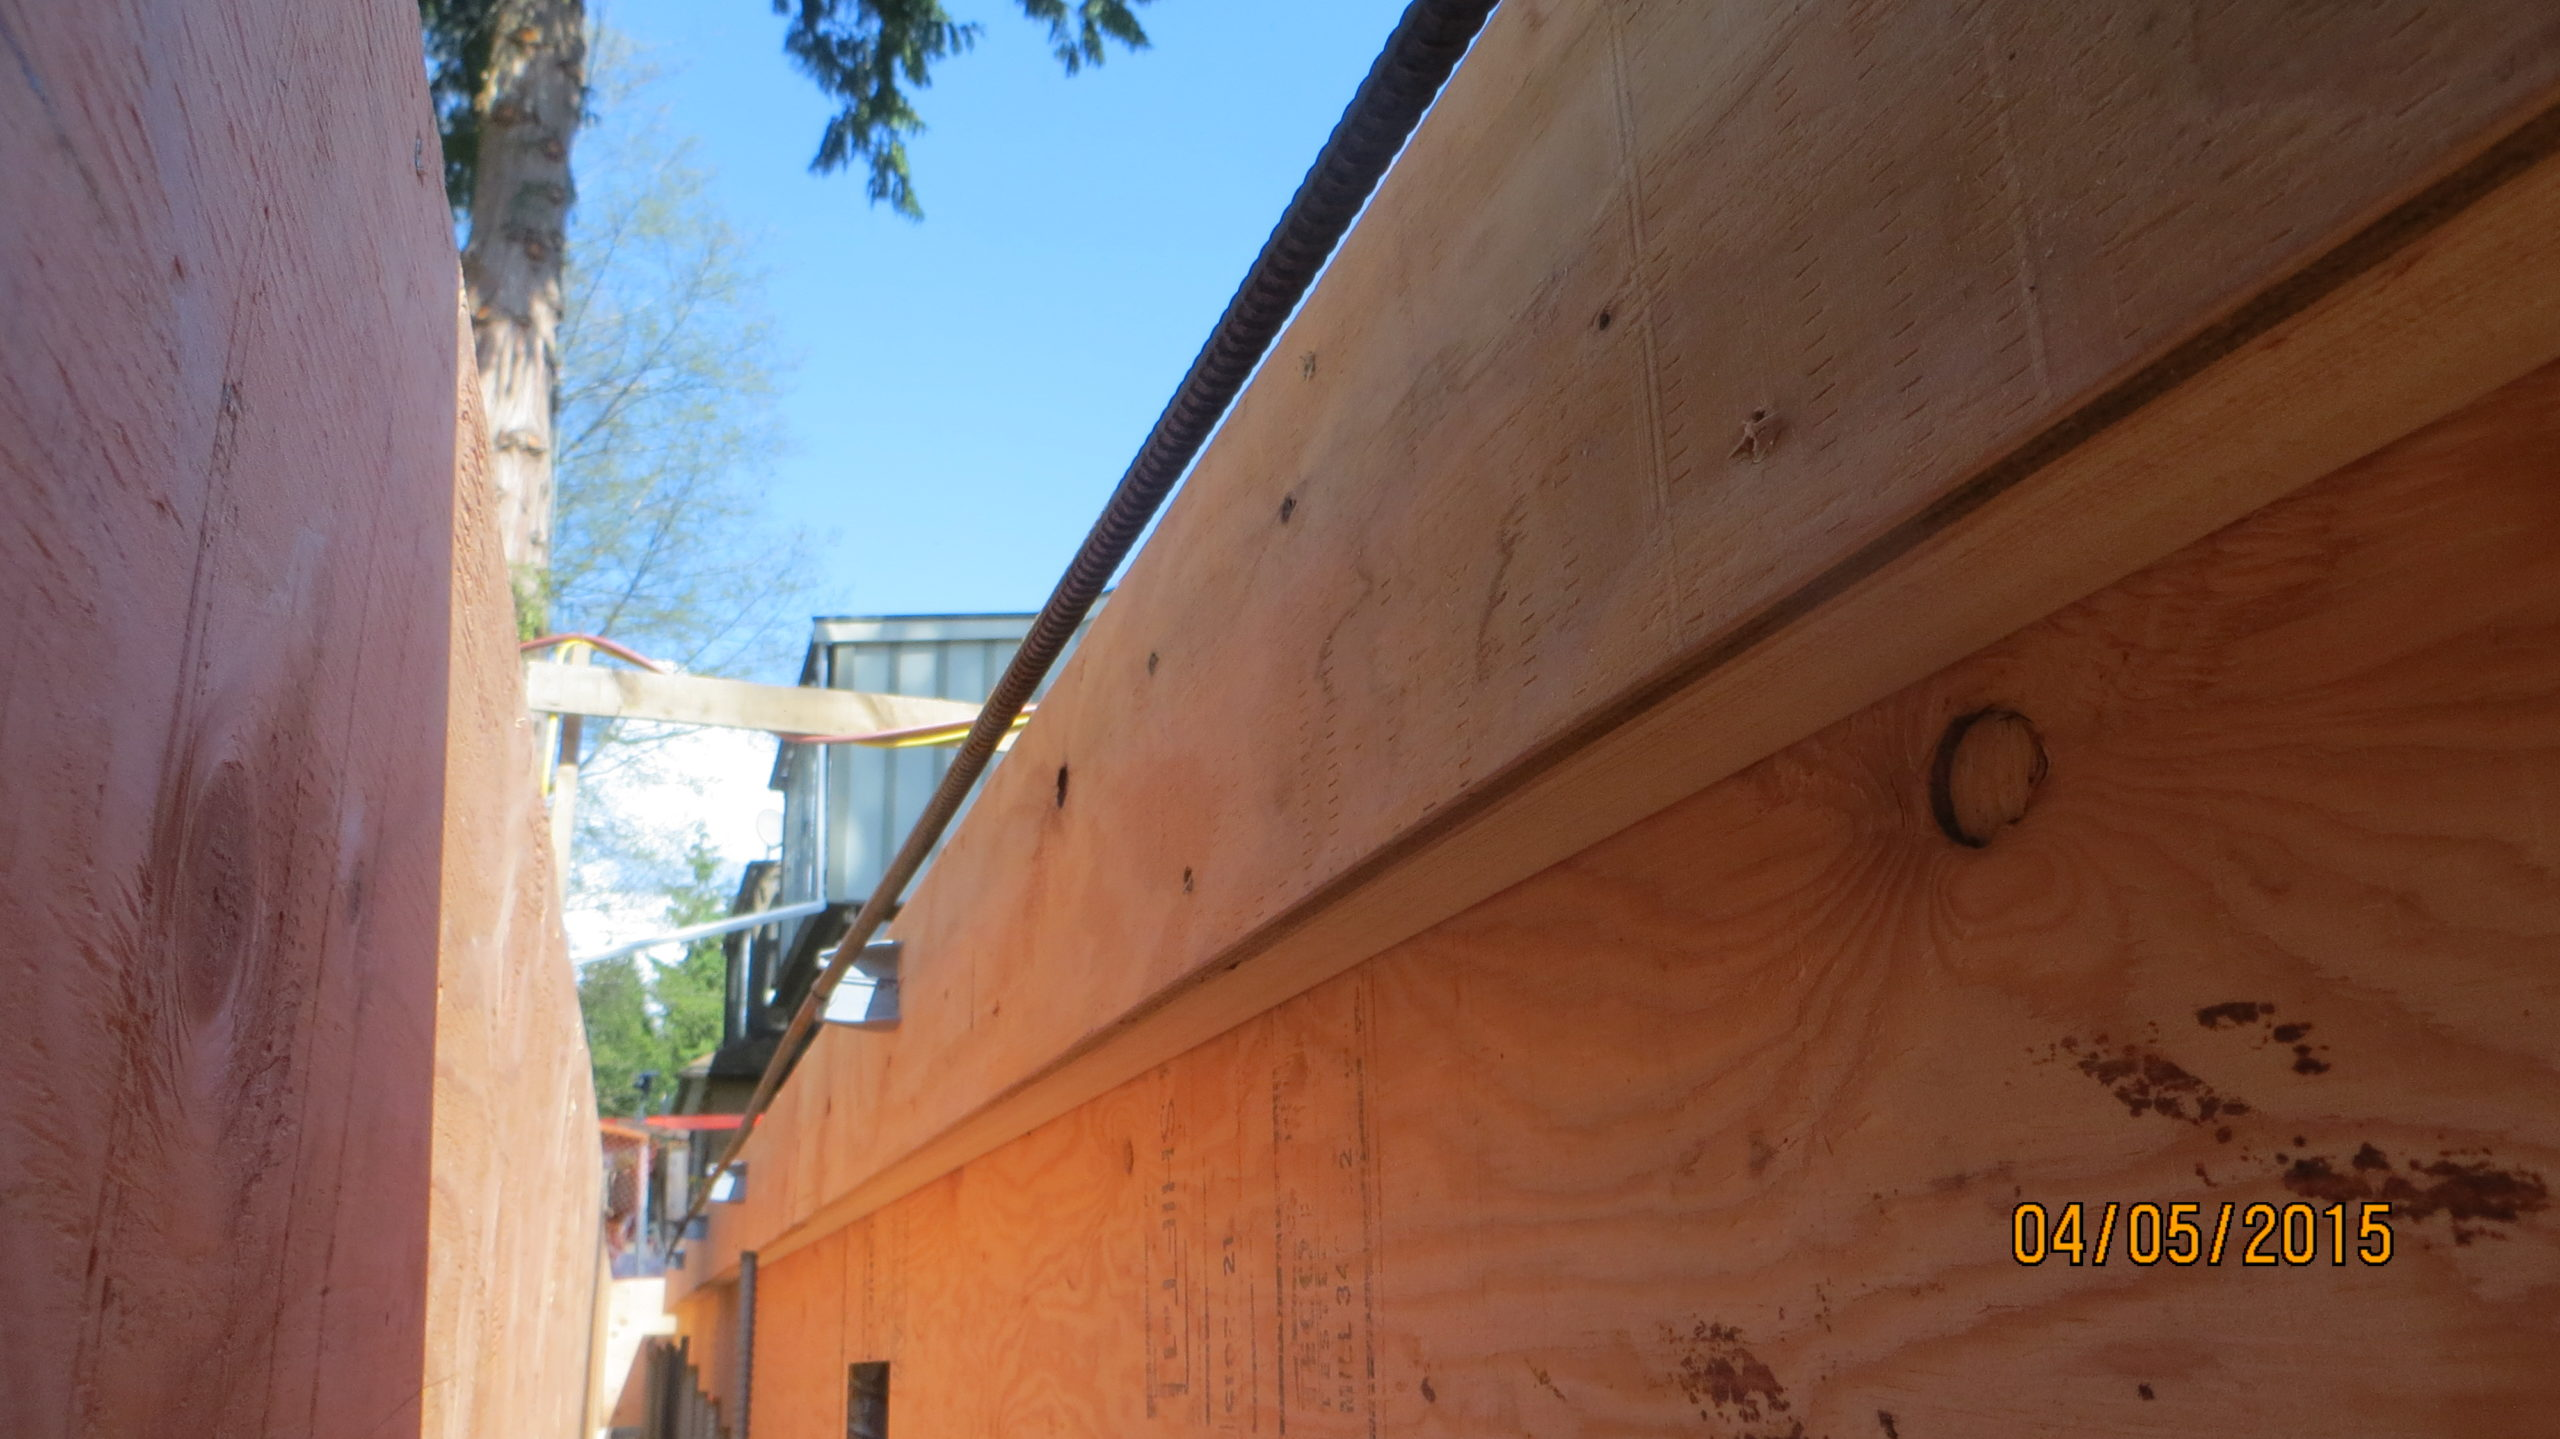 "One of the functions of the formed upper curb was to create a bump-out flush with the top of the floor trusses to provide an extra 2"" of floor space and ensure that the drywall lined up with the framed wall above."